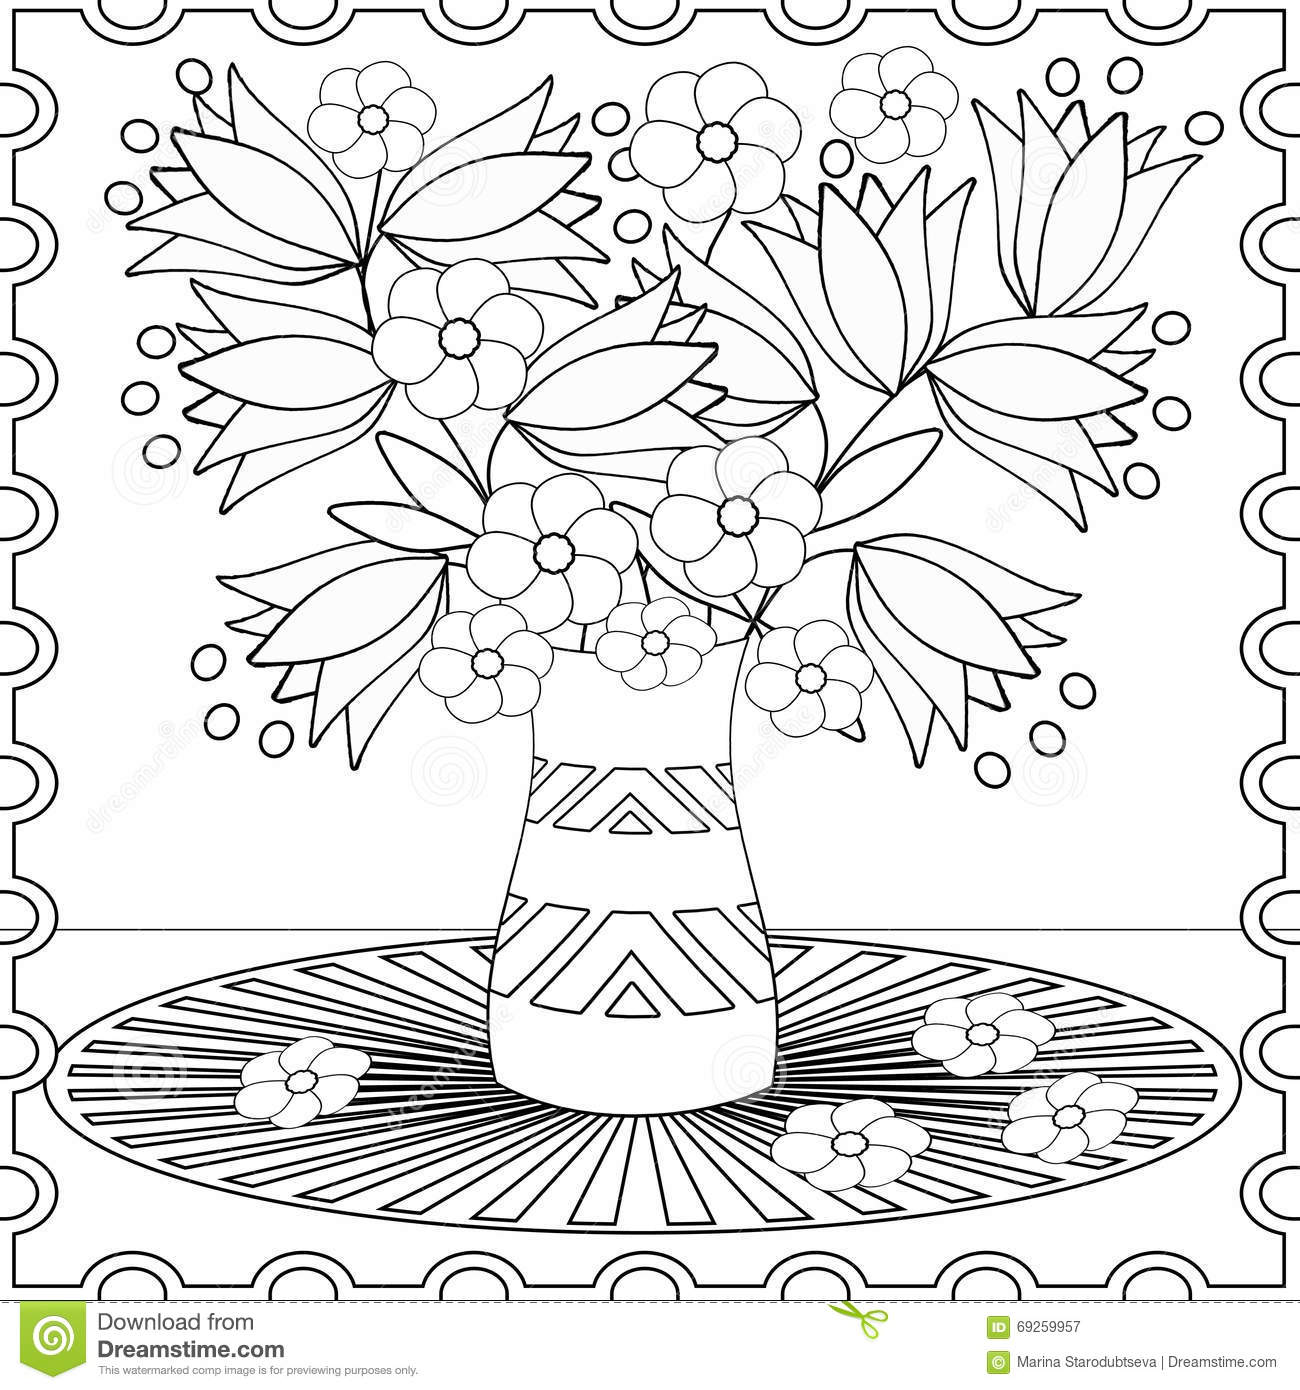 coloring page decorative decorative elements flowers illustration stock illustration